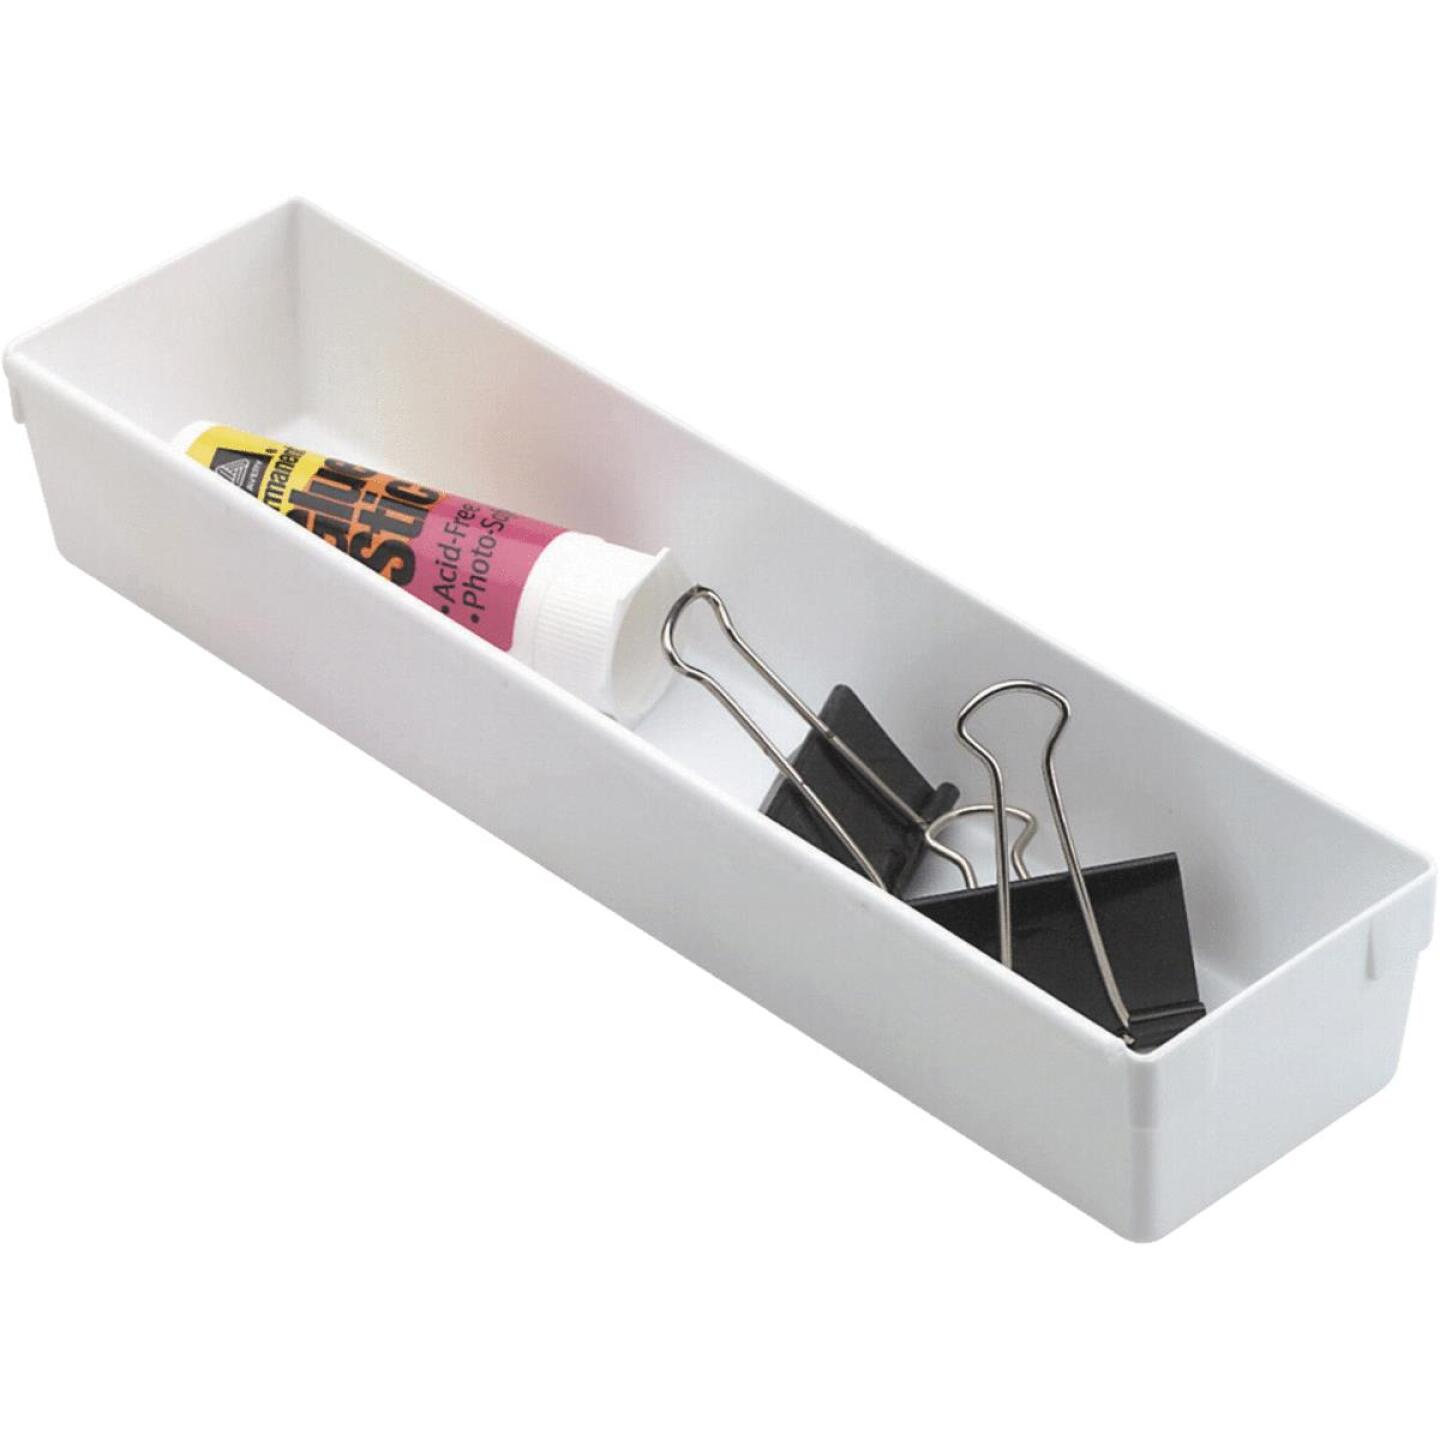 Rubbermaid 3 In. x 12 In. x 2 In. White Drawer Organizer Tray Image 1